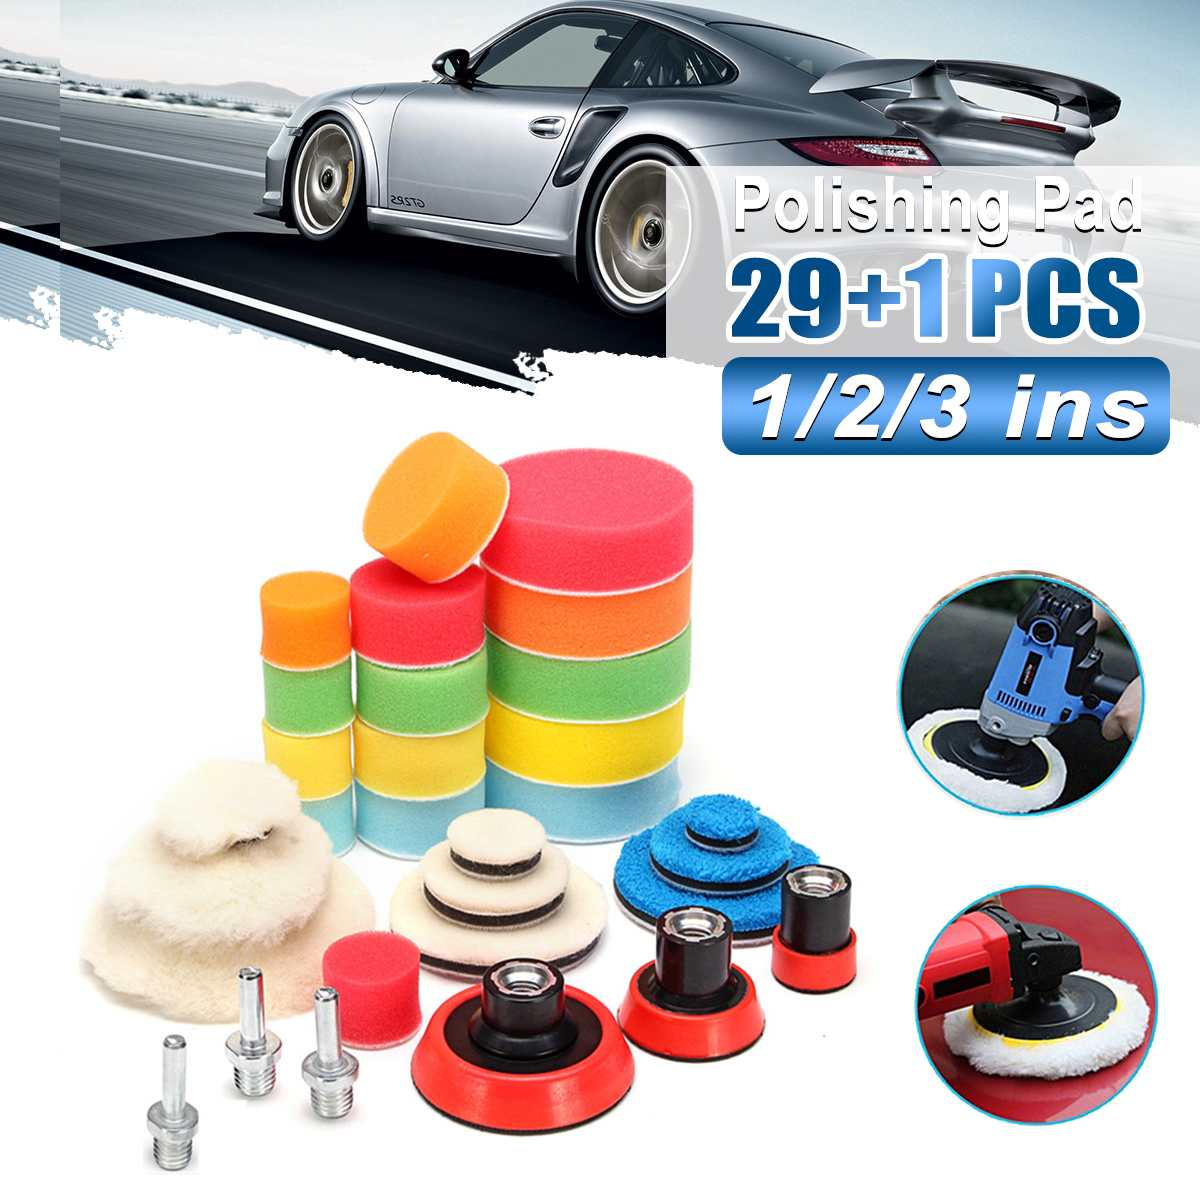 Durable 30Pcs Buffer Pad Set 1/2/3 Inch Auto Car Polishing Pad Kit For Car Polisher + Drill Adapter M14 Power Tools Accessories